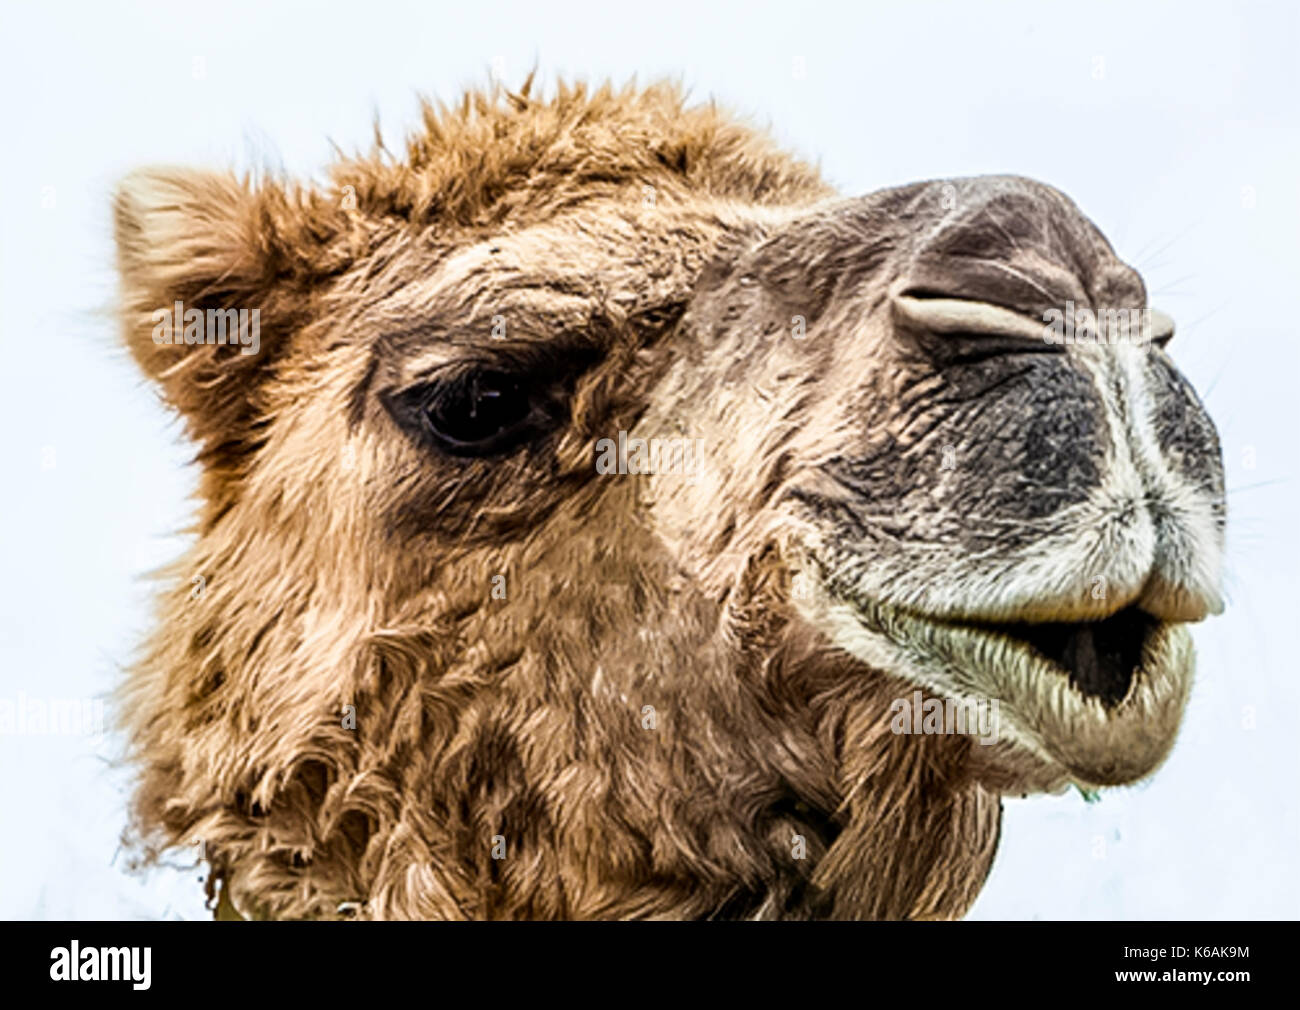 School Holidays Canberra Camel Rides At Canberra S Arboretum During School Holidays Stock